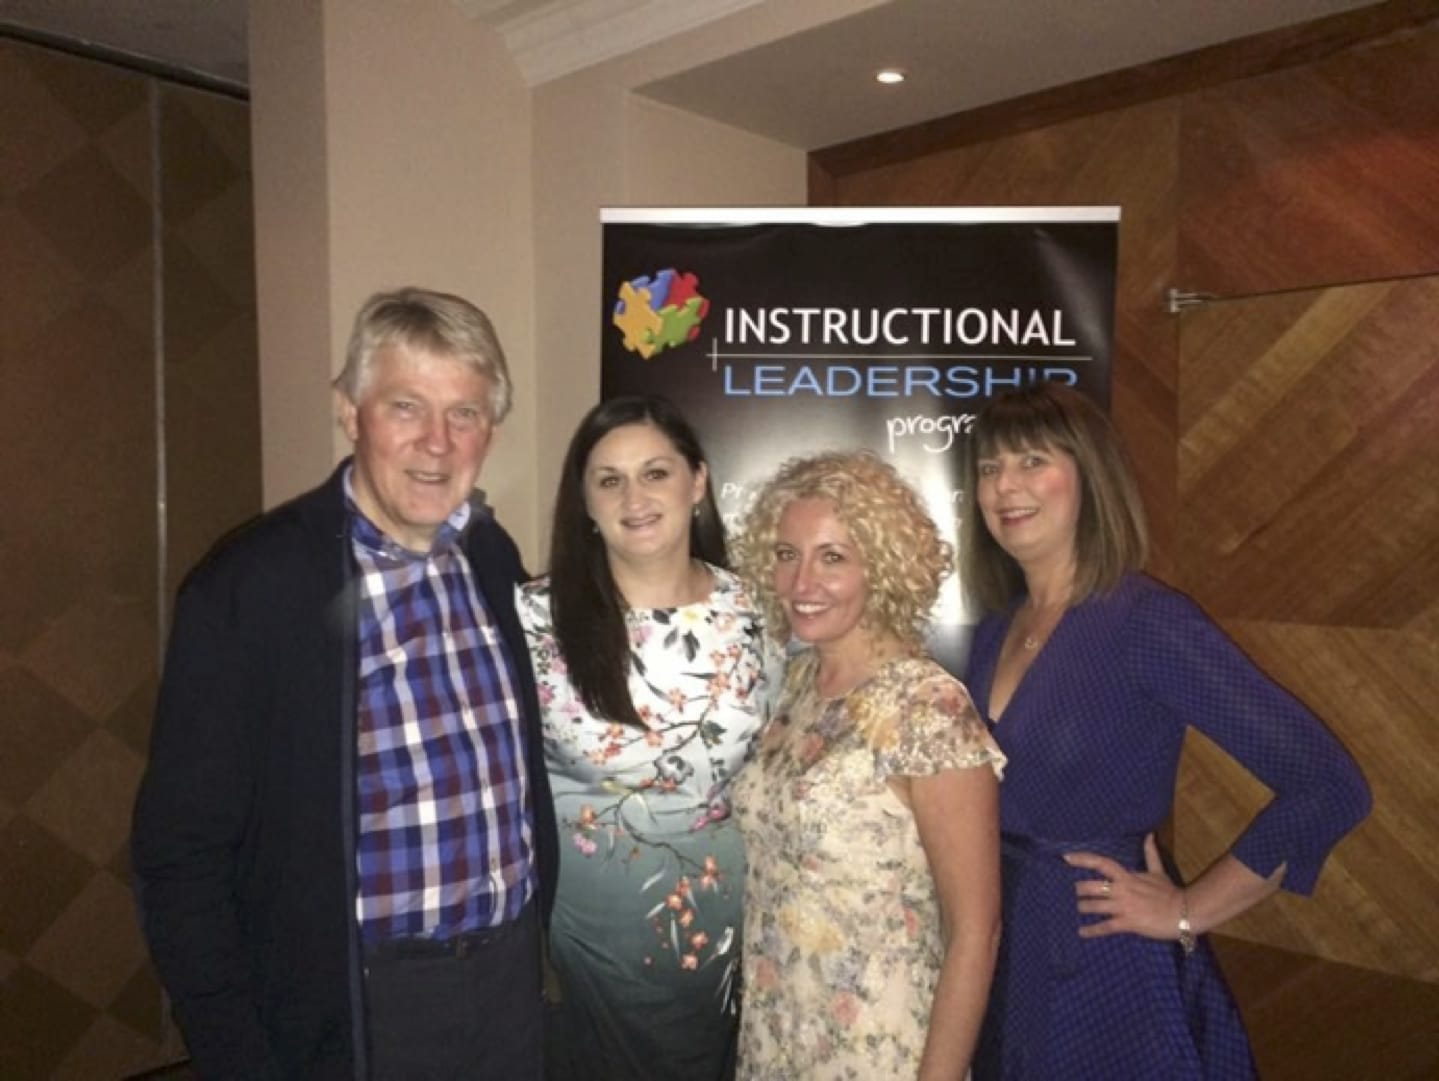 Oct 2016: Desmond College Post Primary School staff, Margaret O'Mahoney, Bernadine Enright and Liz Cregan graduated from The Barrie Bennett Instructional Leadership Programme